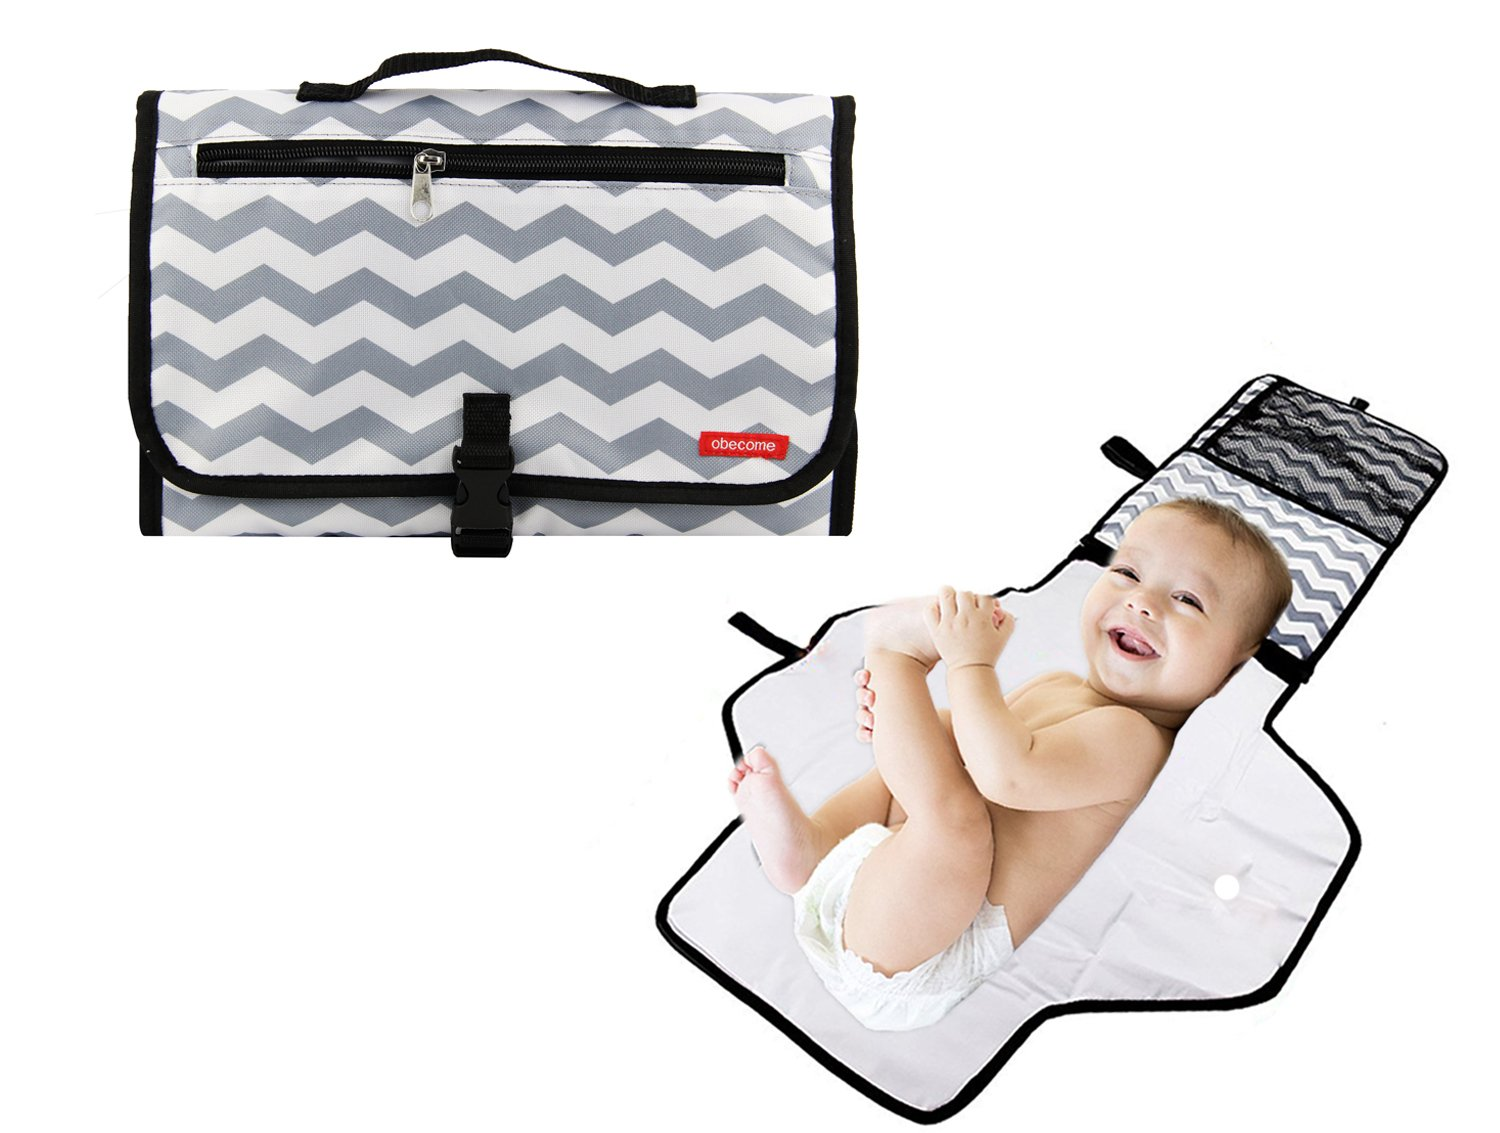 Obecome Portable Waterproof Baby Diaper Changing Pad Kit, Travel Home Change Mat Organizer Bag for Toddlers Infants and Newborns by Obecome